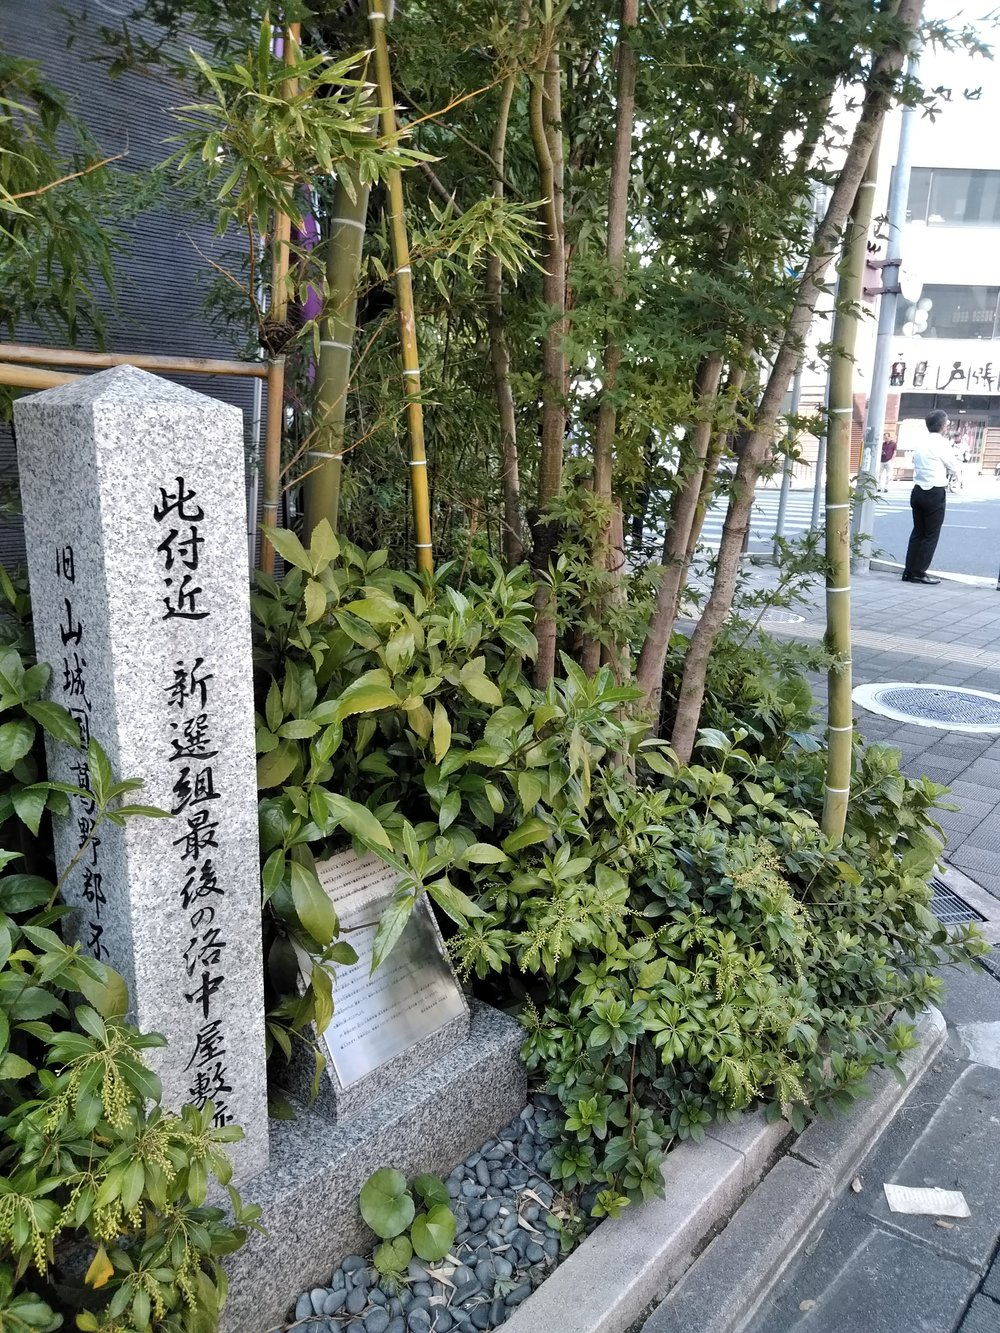 The statue of  Shinsengumi